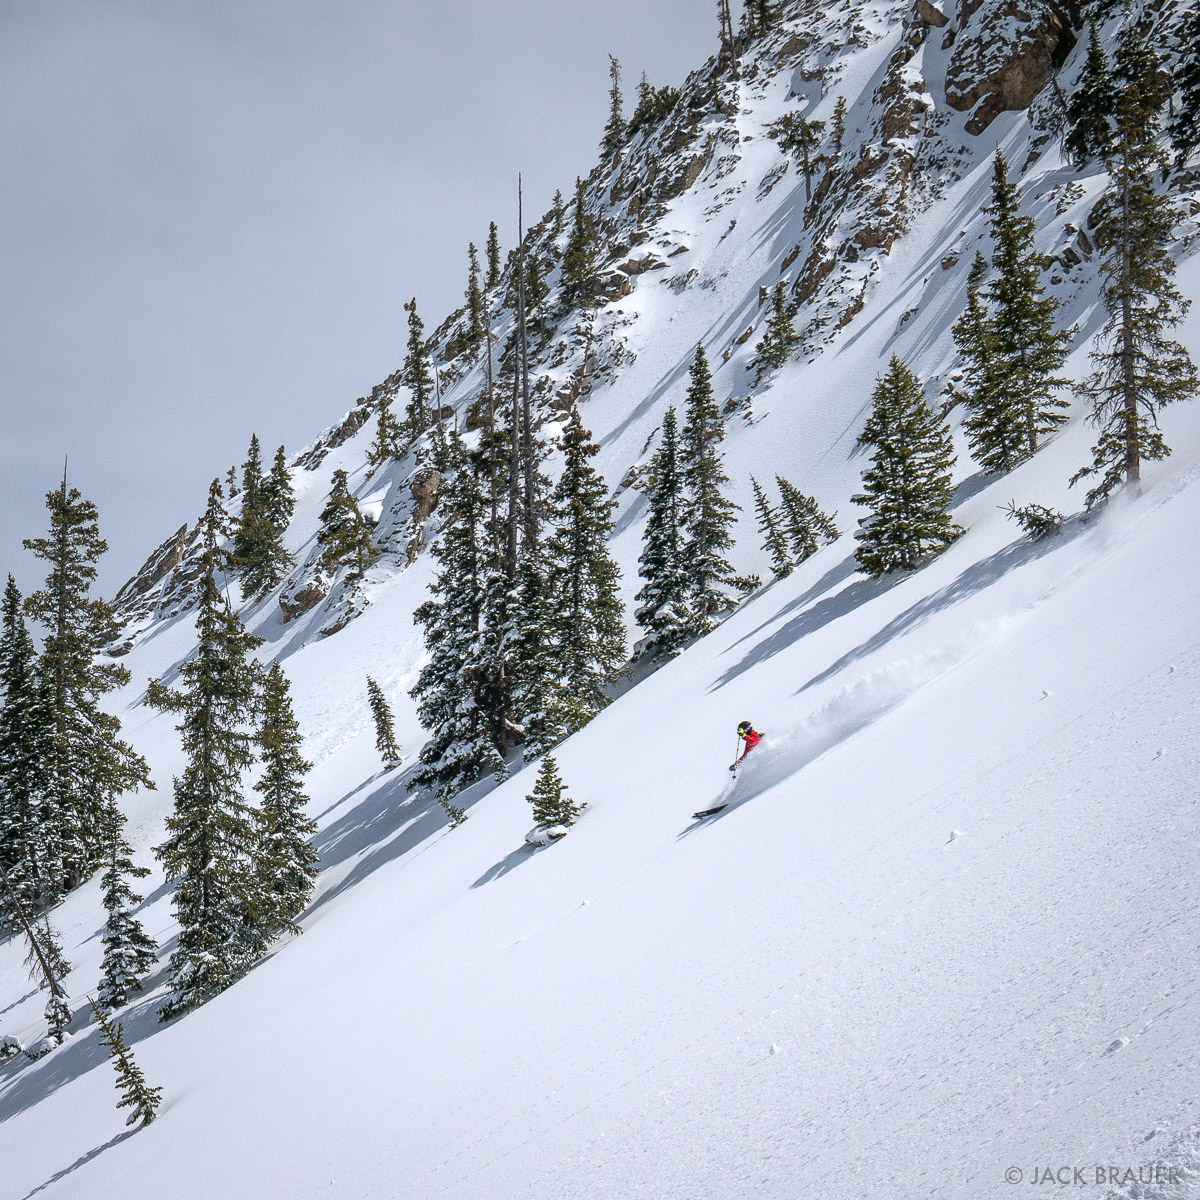 Paul rips down untracked Spellbound Bowl.